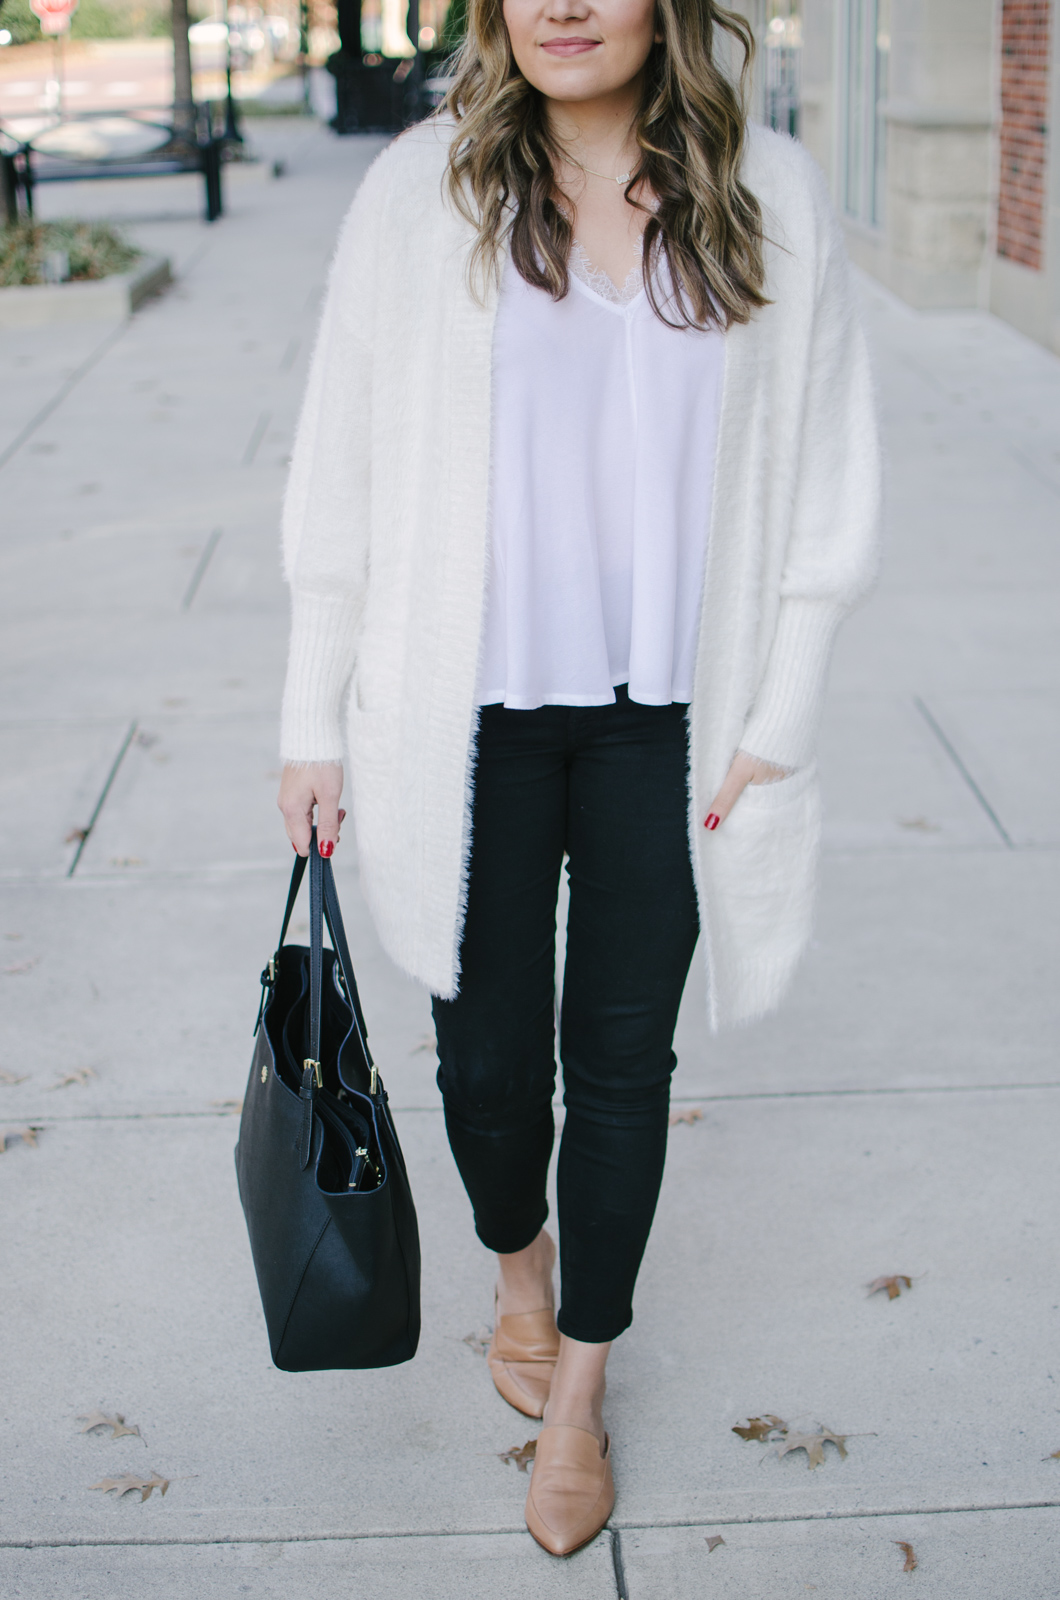 casual winter white outfit - I'm in love with this cozy cardigan and lacy tank | Get outfit details or see more cute casual Winter outfits at bylaurenm.com